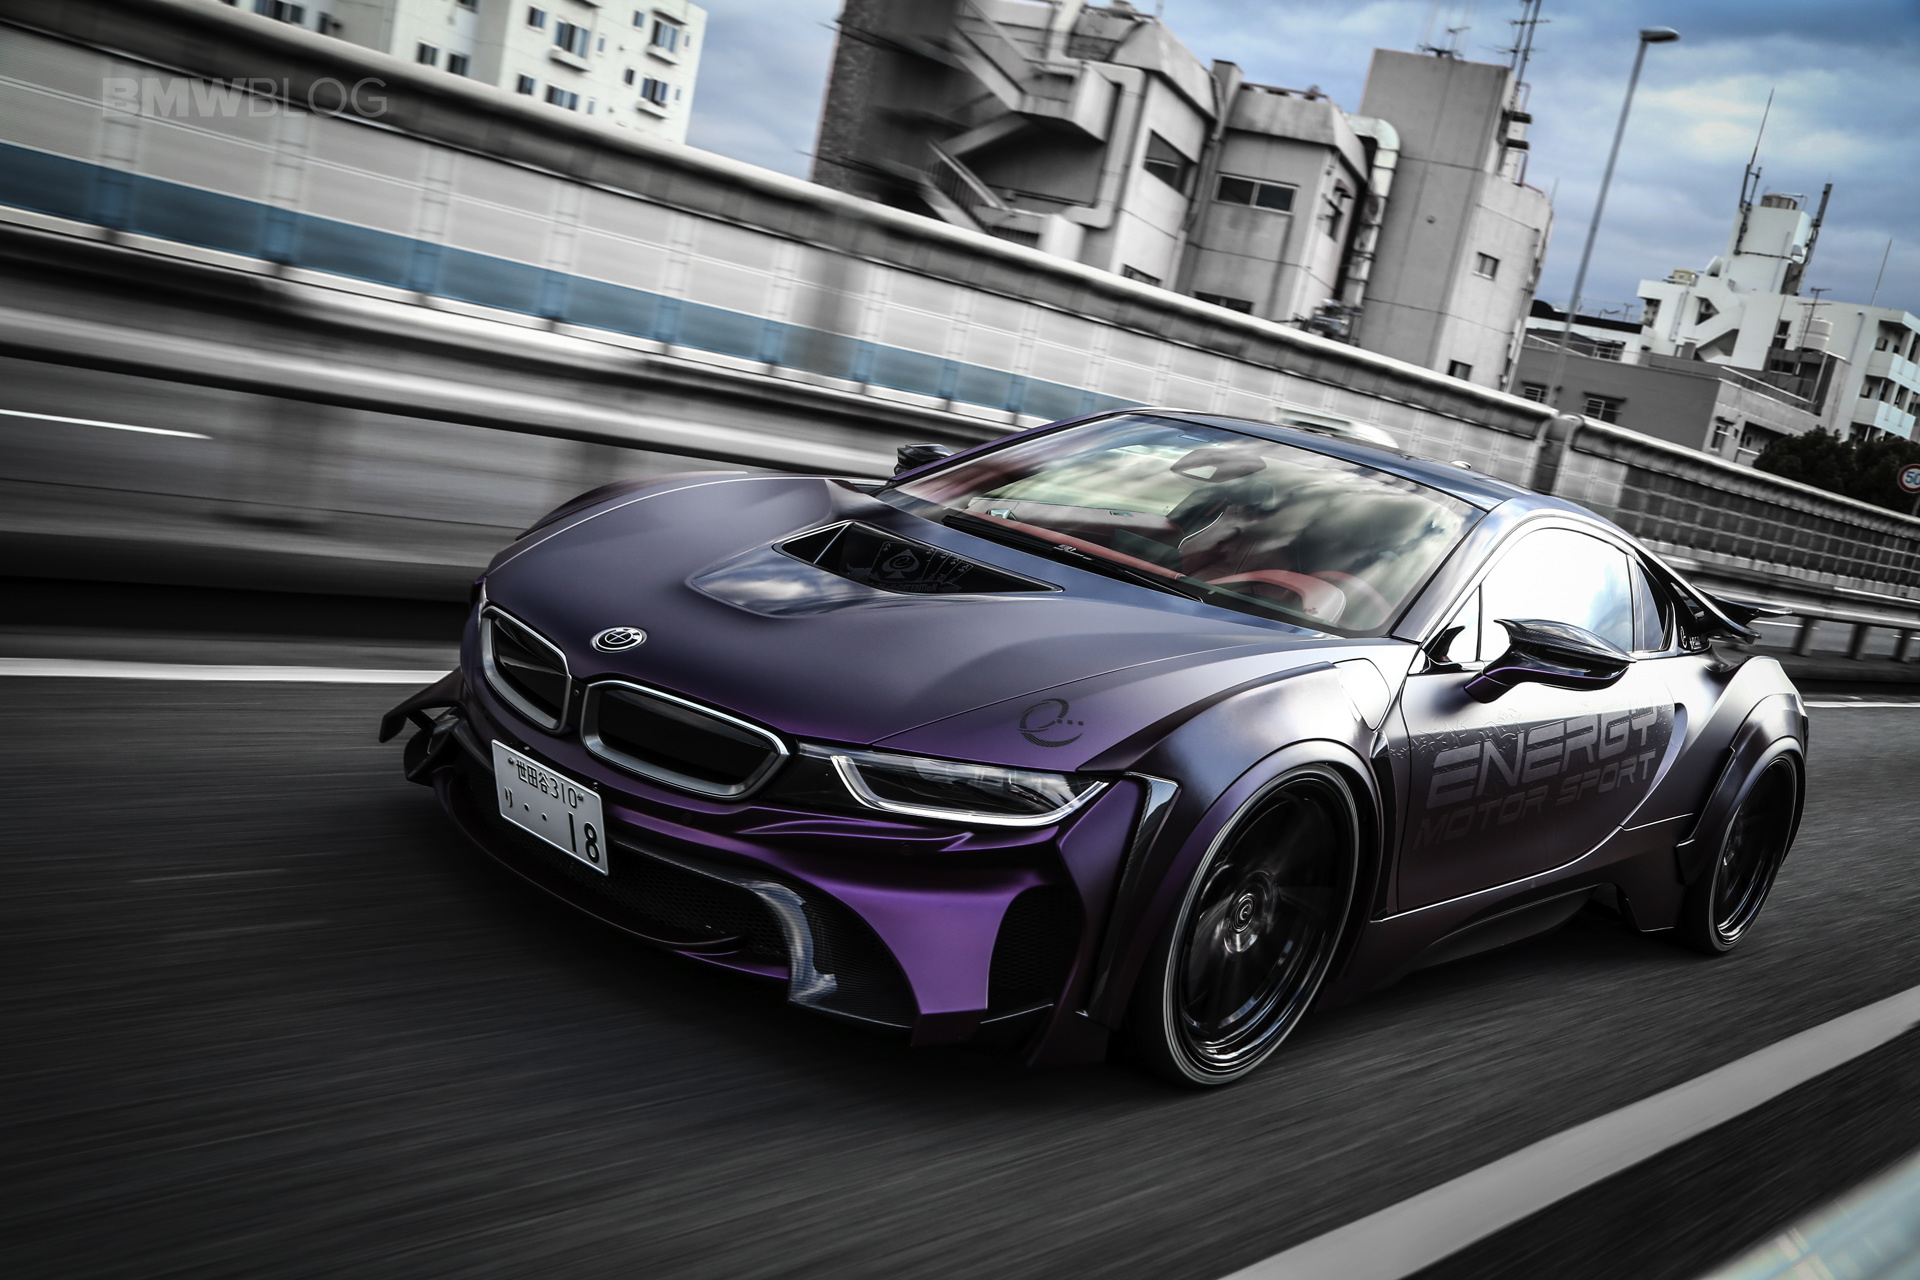 Batman The Dark Knight Car Wallpaper Bmw Evo I8 Quot Dark Knight Quot Edition Is The Batmobile We All Want